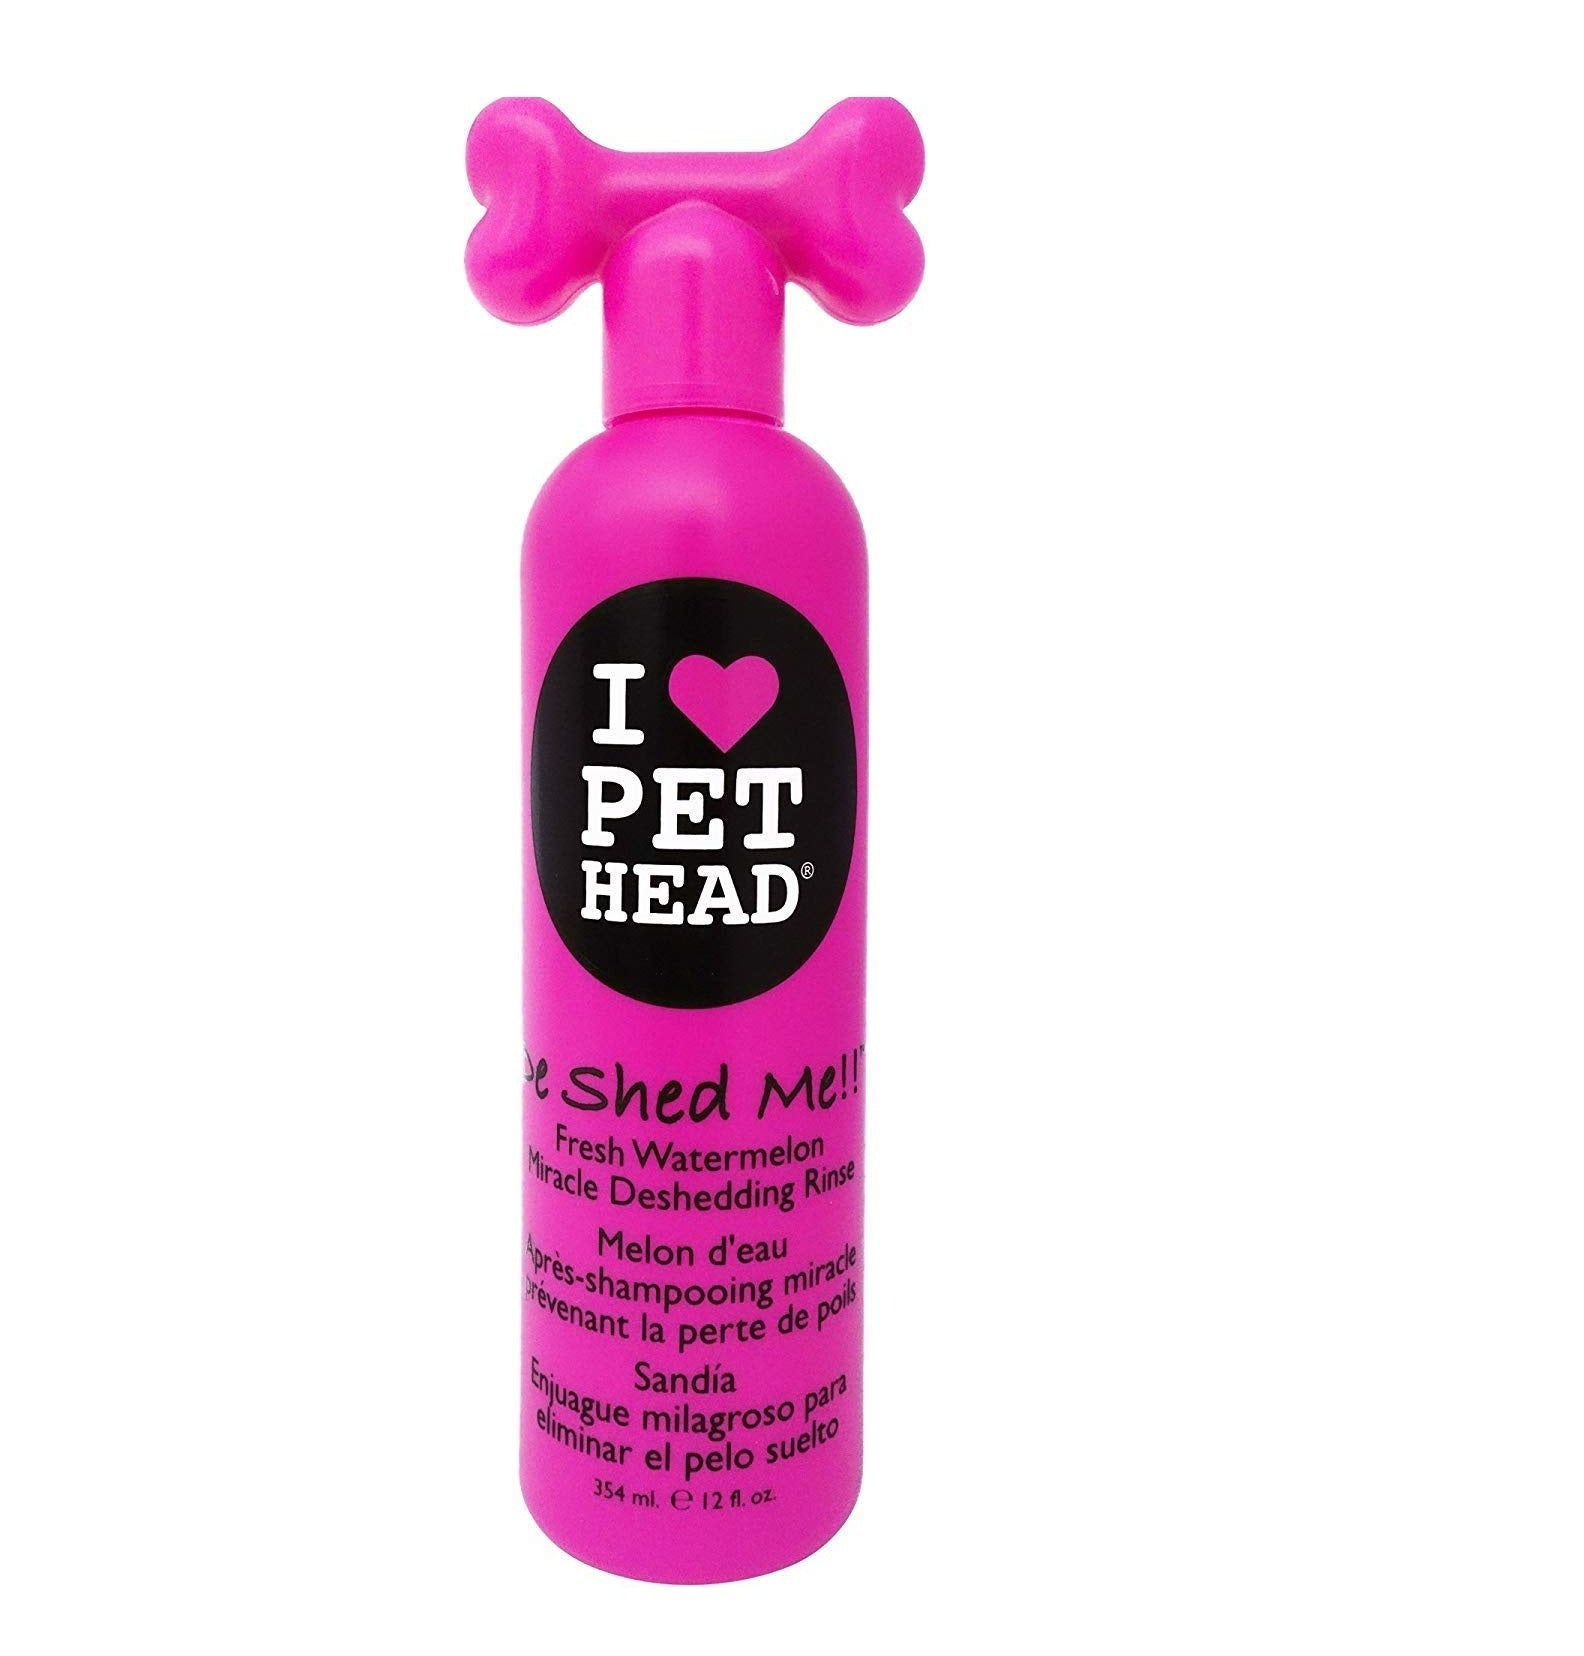 Pet Head De Shed Me Miracle Watermelon Rinse Dog Shampoo 354 ml - pet-club-india